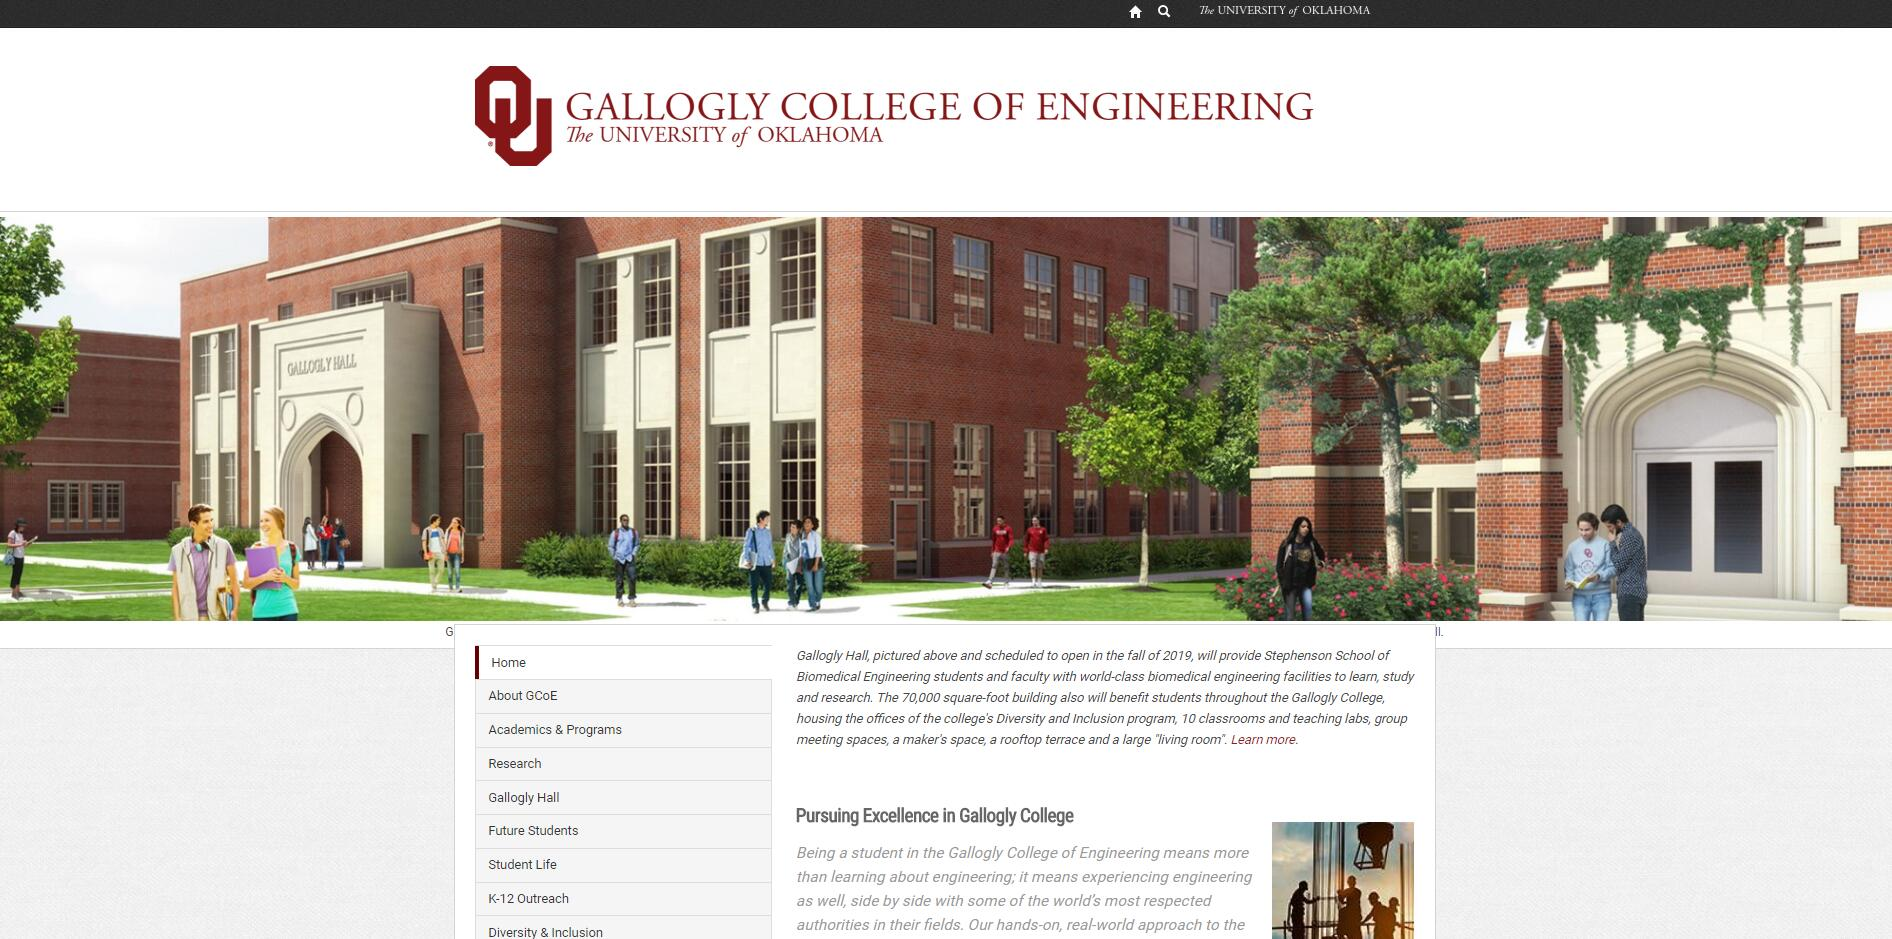 The College of Engineering at University of Oklahoma